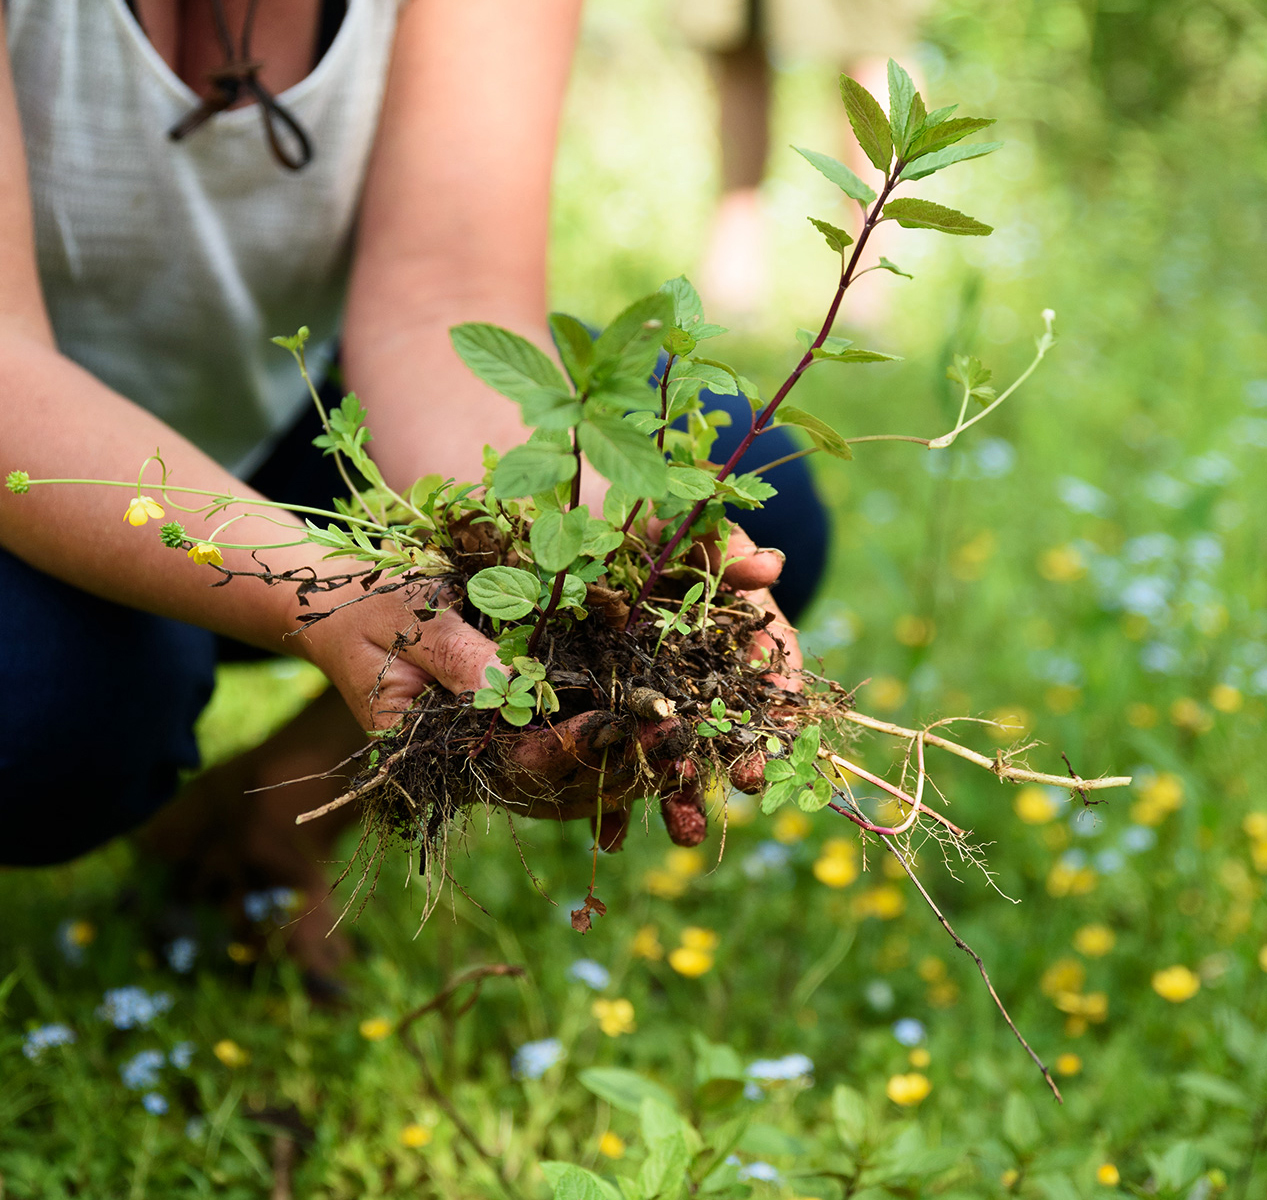 Person holding wild mint plant removed from the ground.